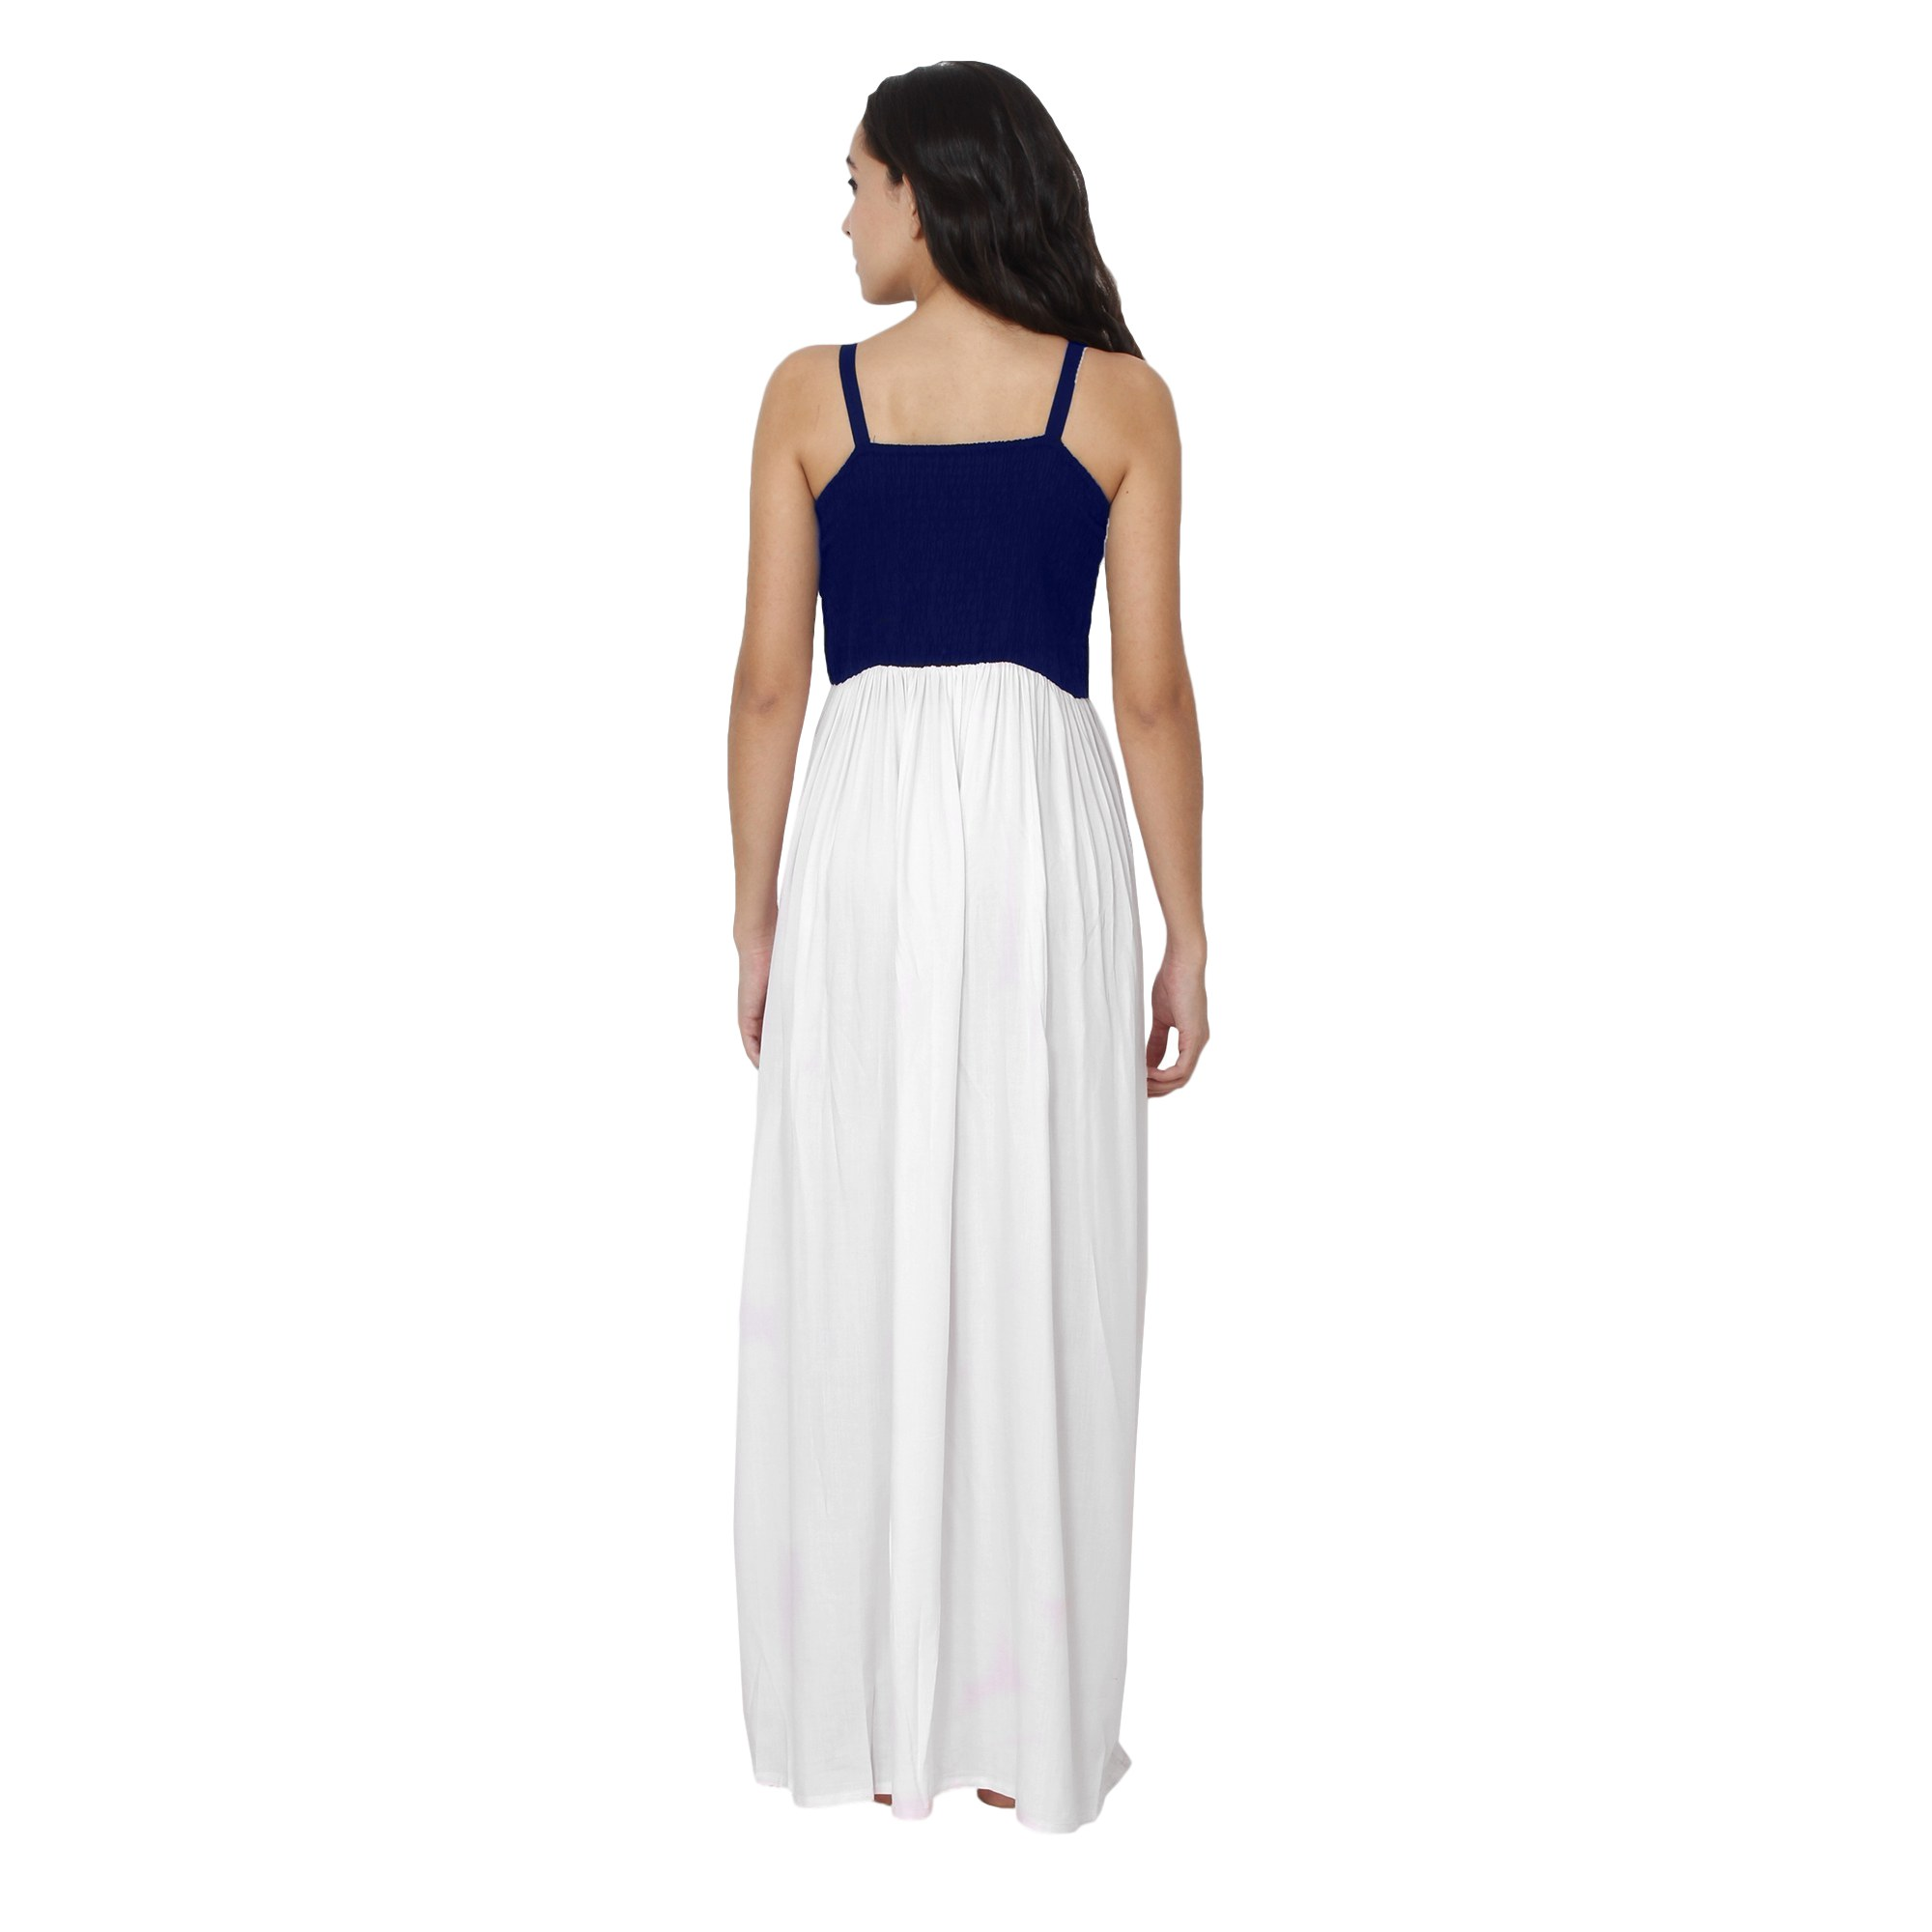 Embroidered Blouson Maxi Dress in Royal Blue:White